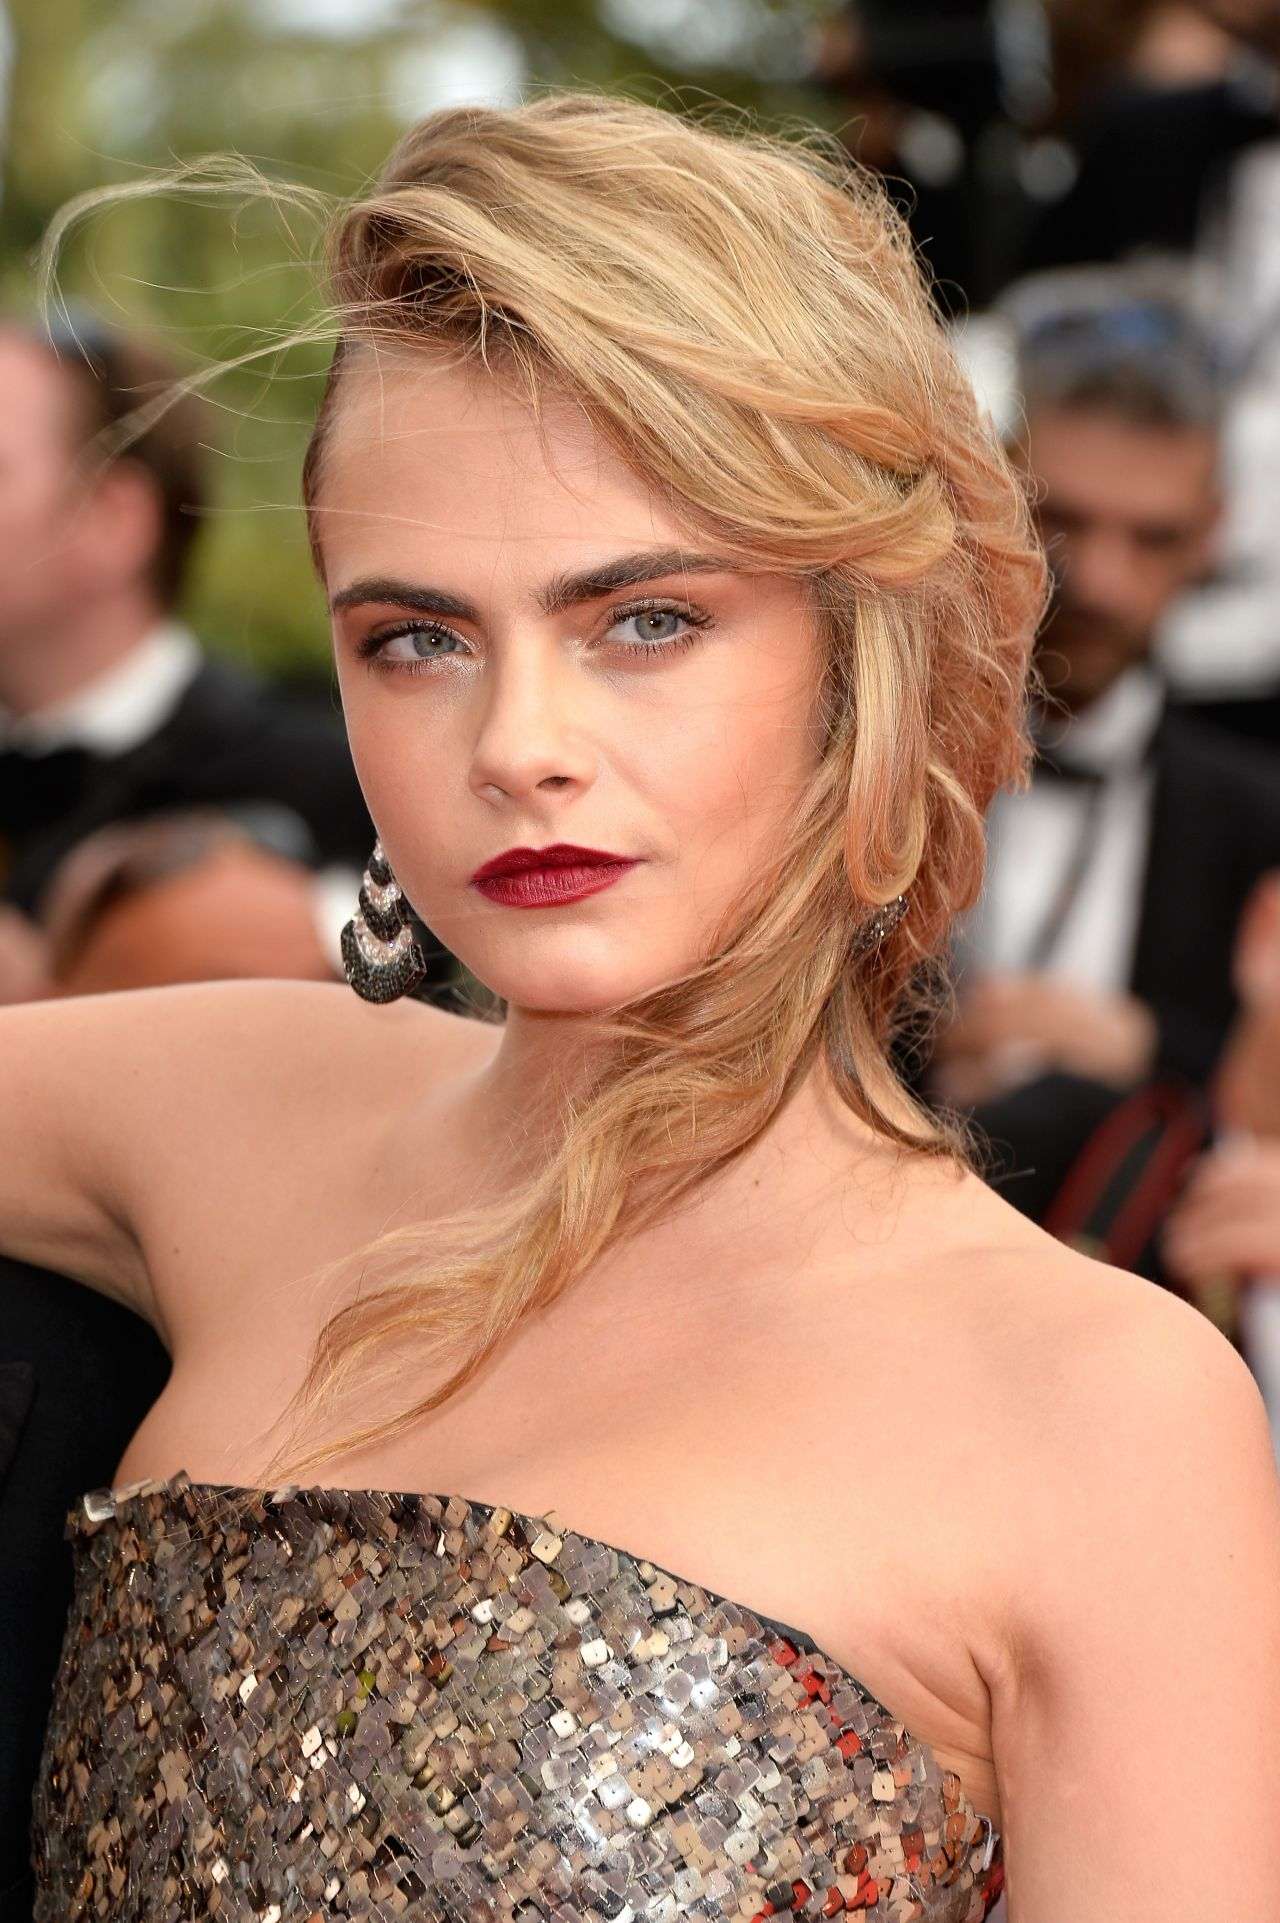 Cara Delevingne In Chanel Couture Short Dress The